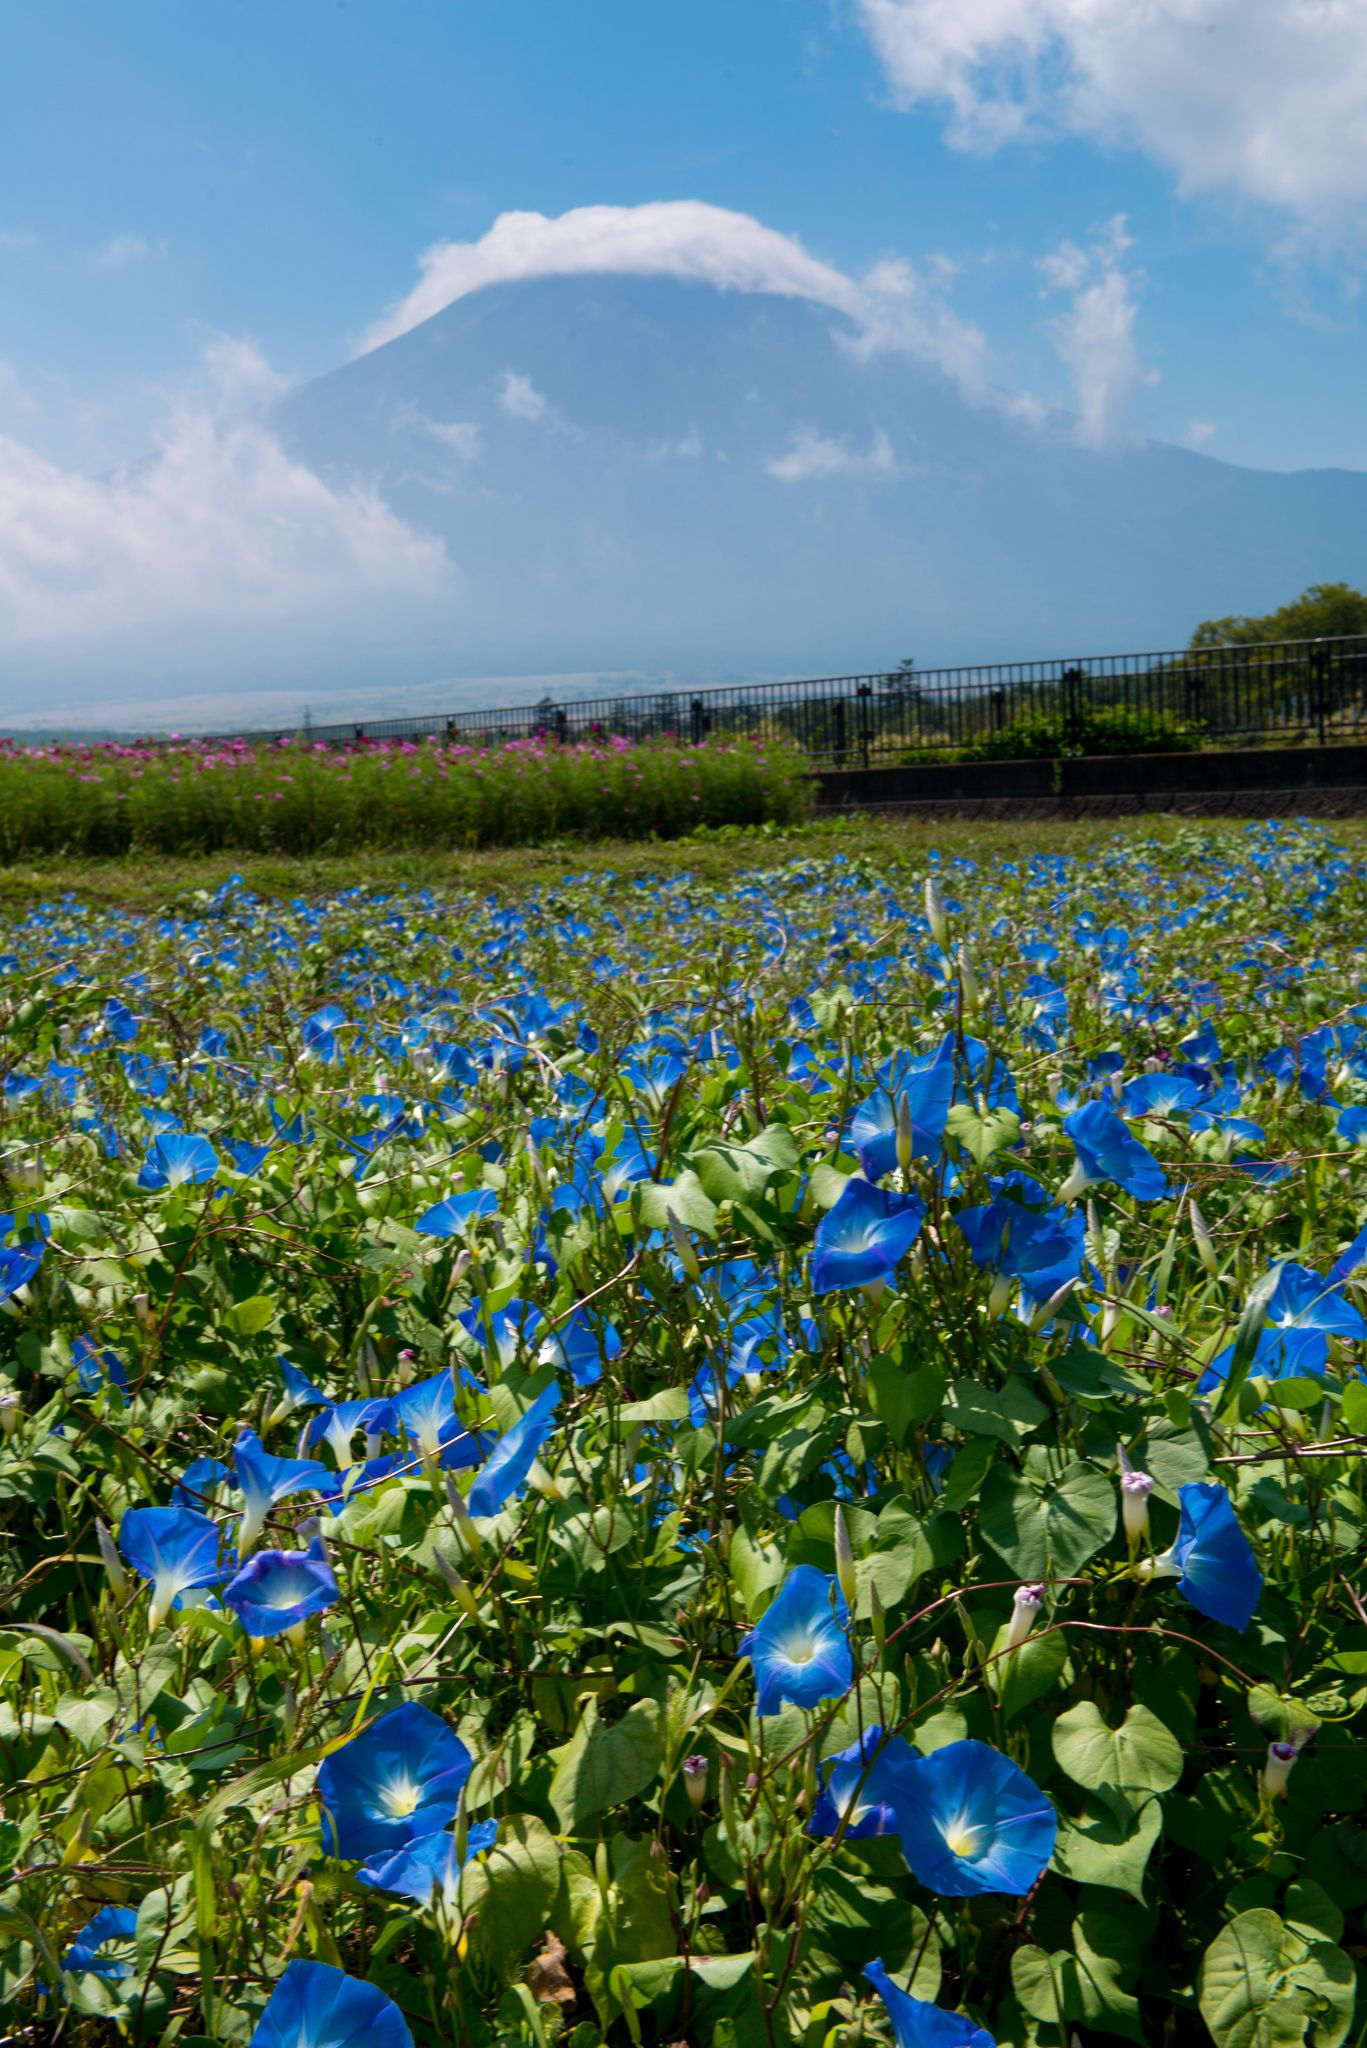 Heavenly Blue Blue Morning Glory Flower Field Flowers Nature